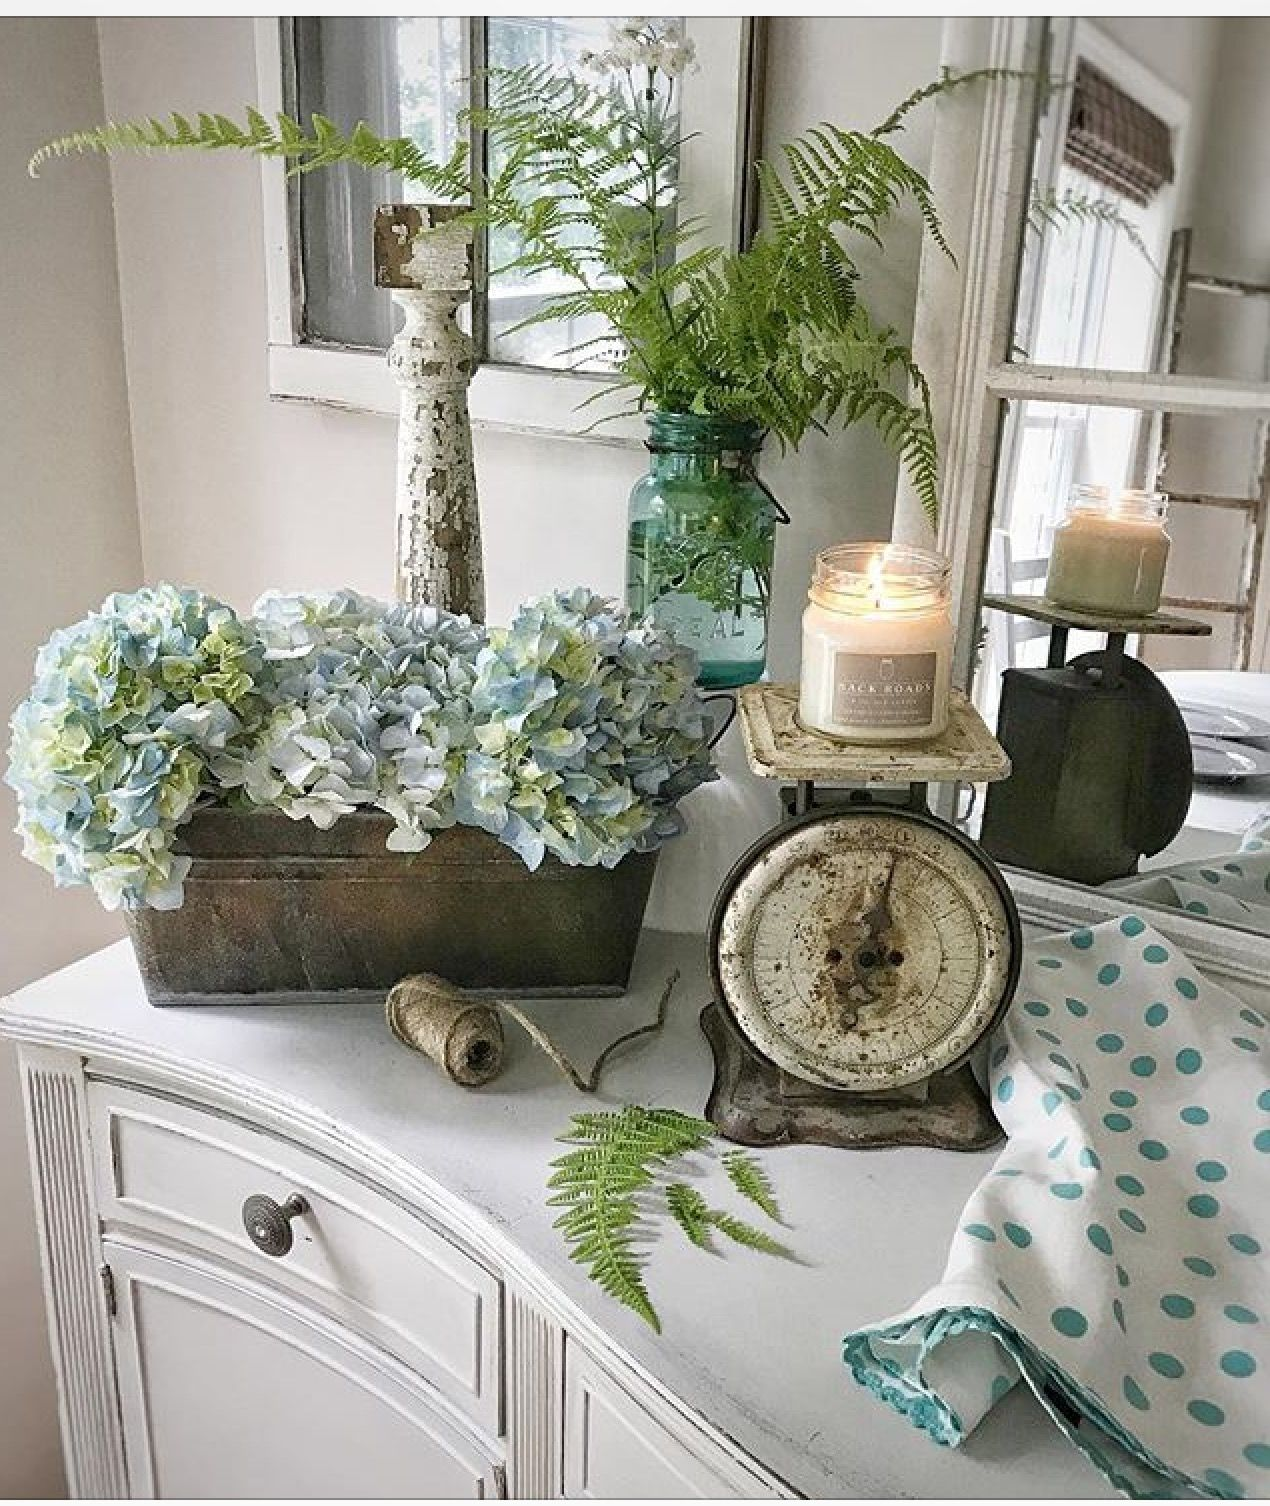 55 Bohemian Living Room Decor Ideas: Decor Image By Penny W On Home Living Room